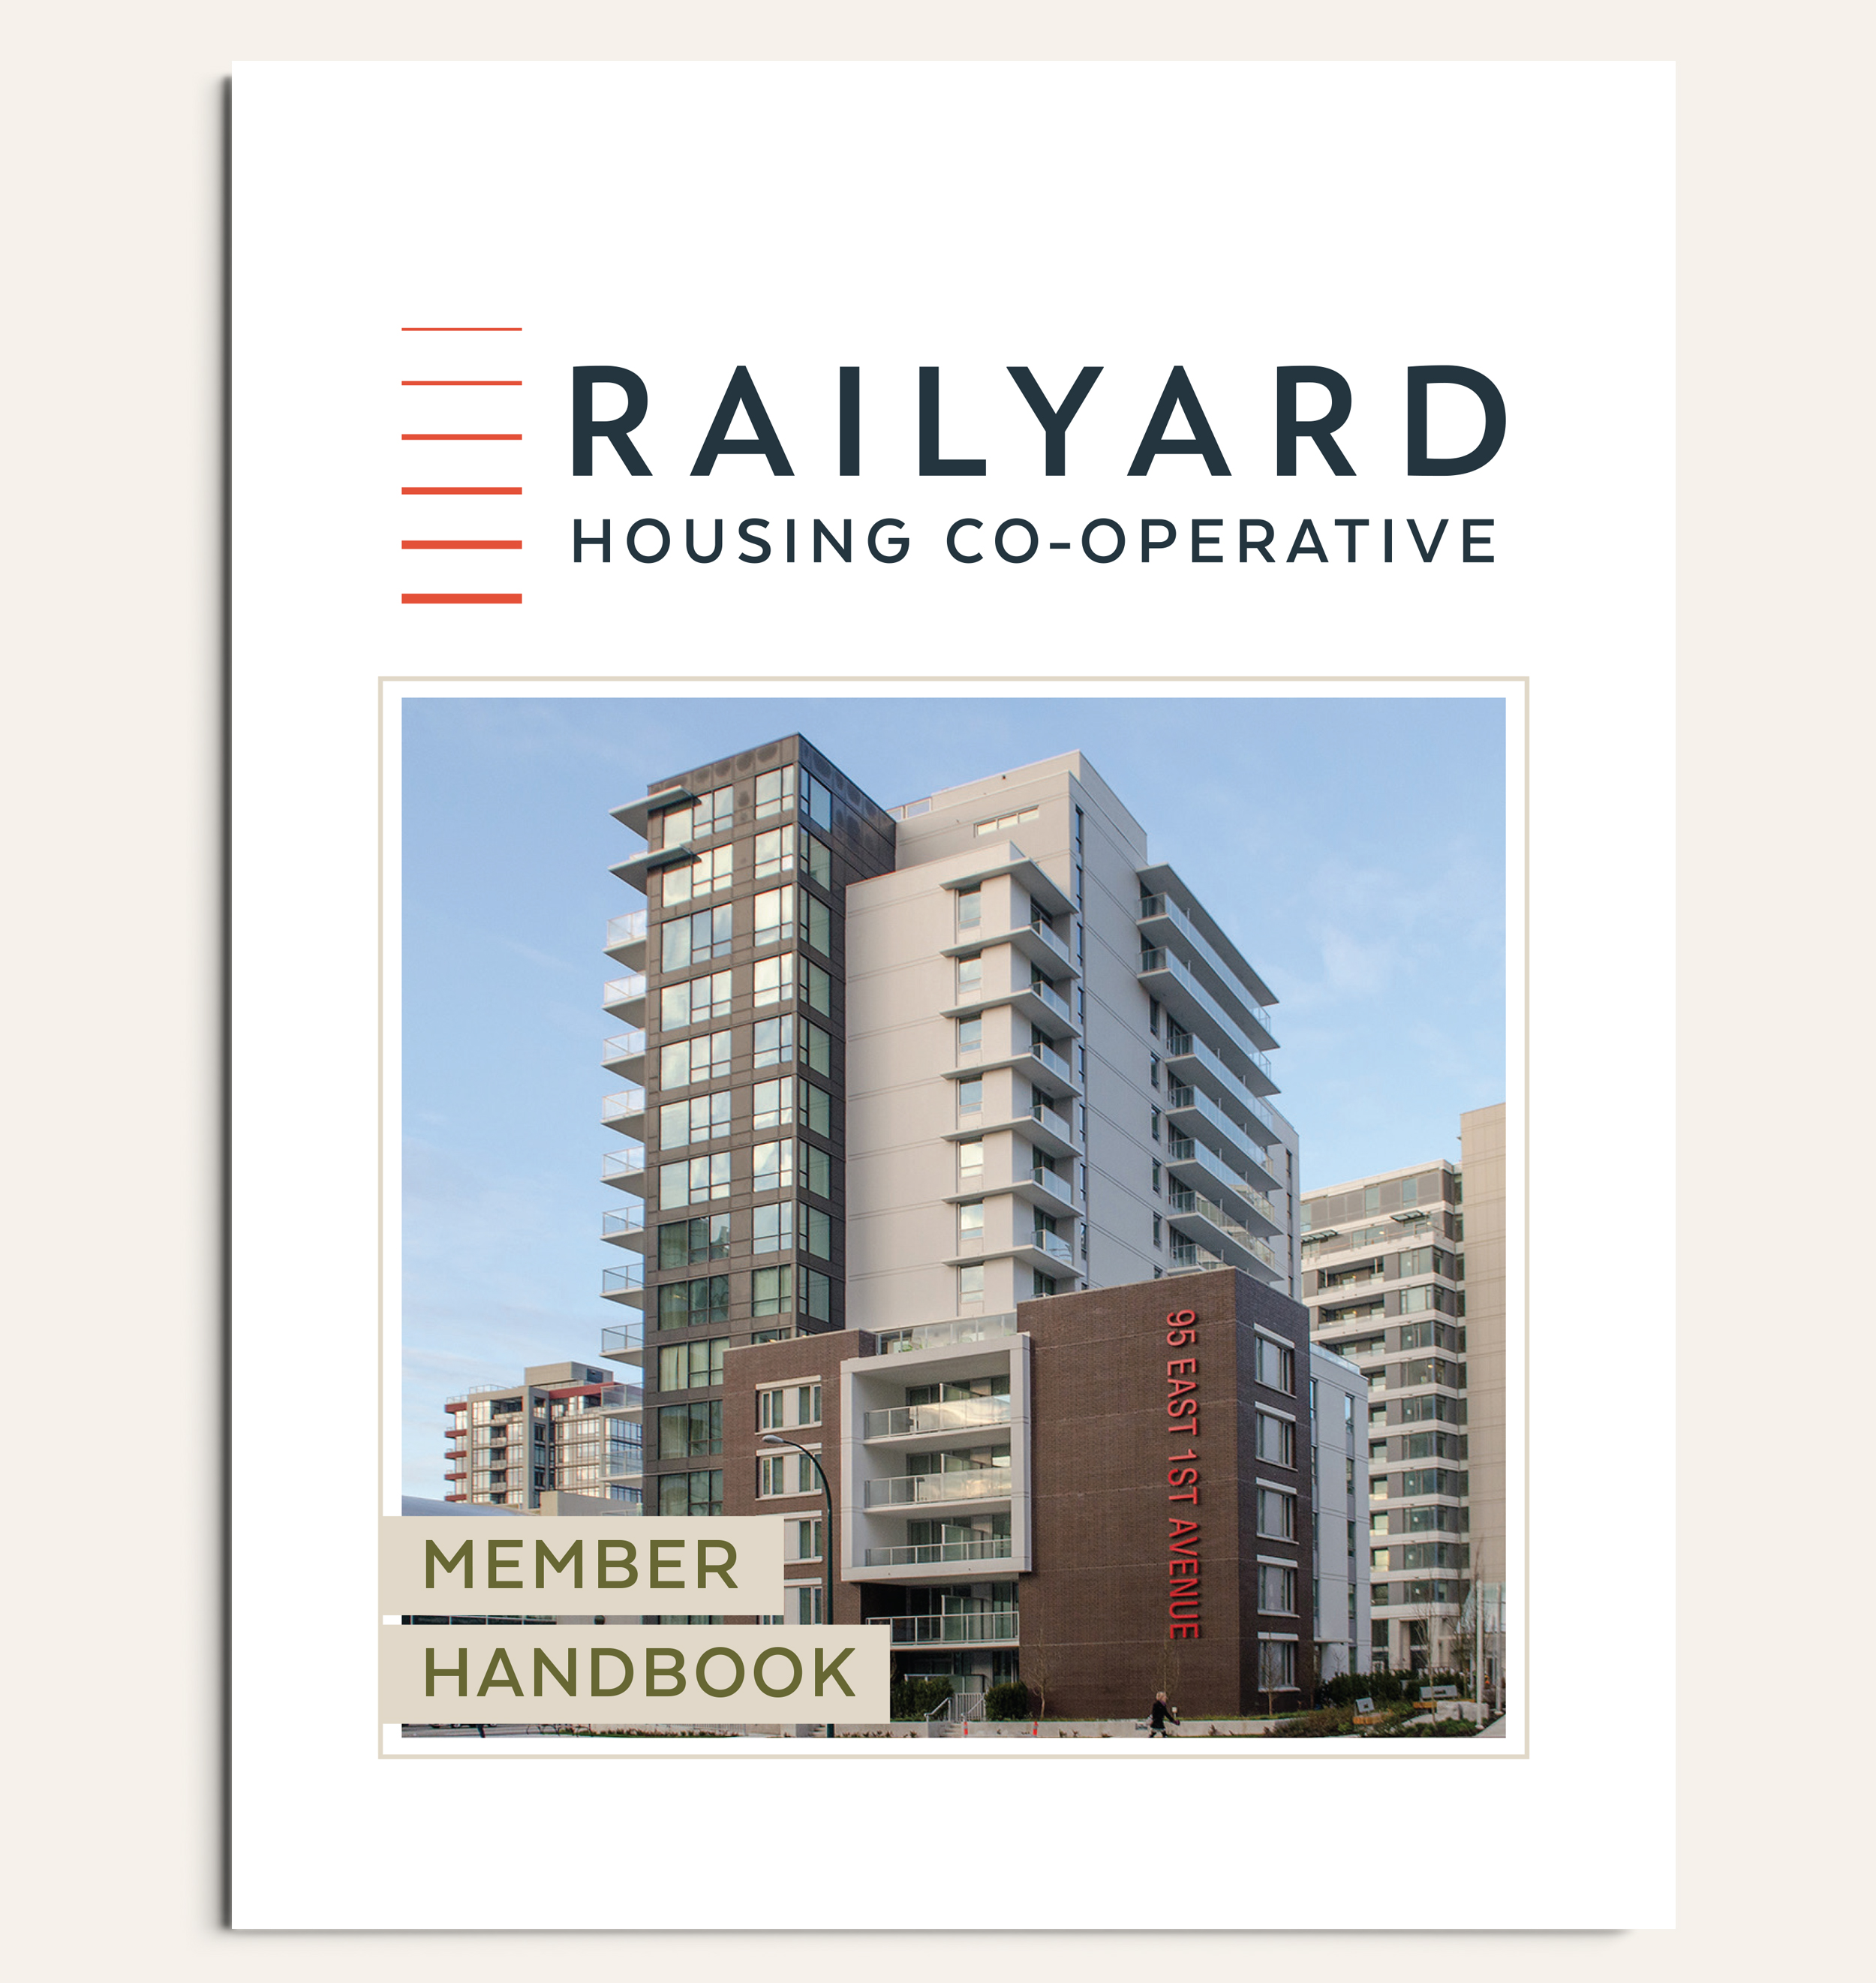 railyard-coverpage.png